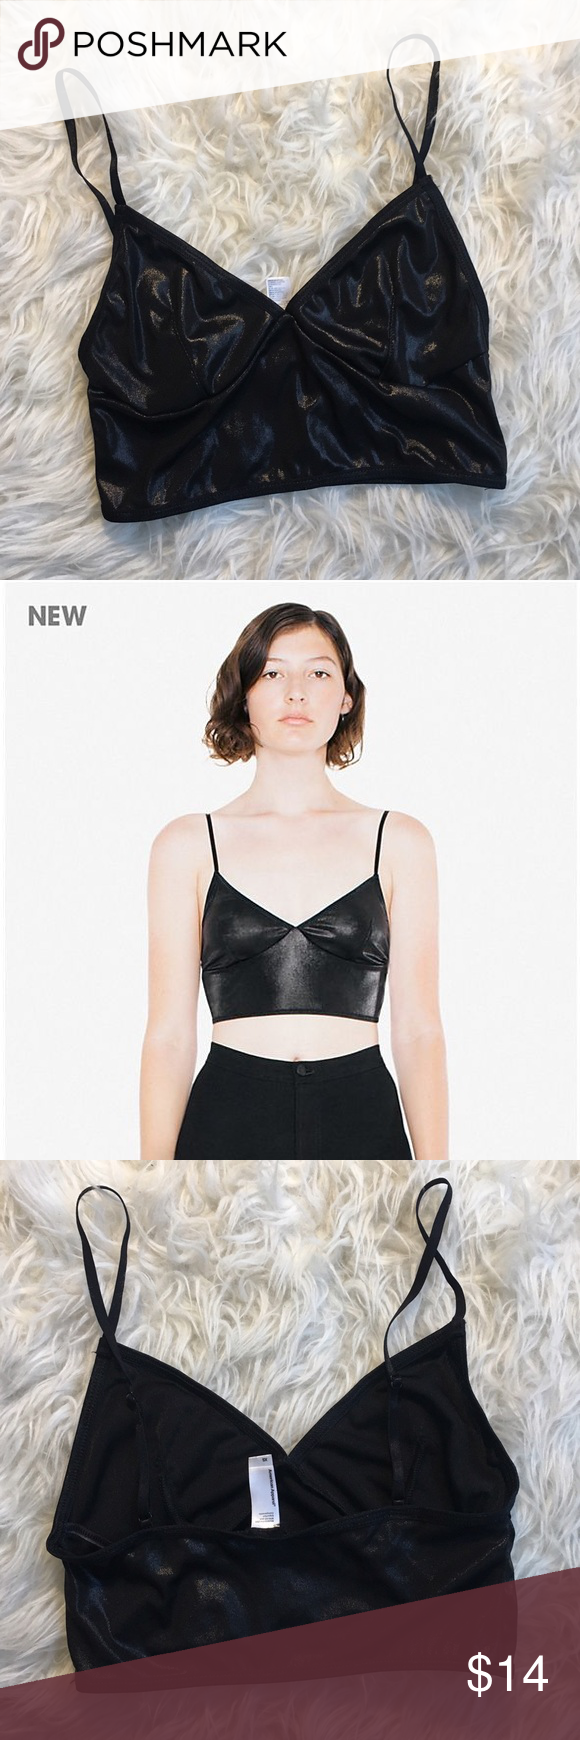 9ed07cbbf32bf American Apparel Metallic Crop Sofia Bralette XS American Apparel Metallic  Jersey Sofia Bralette in black. Size XS. New without tags